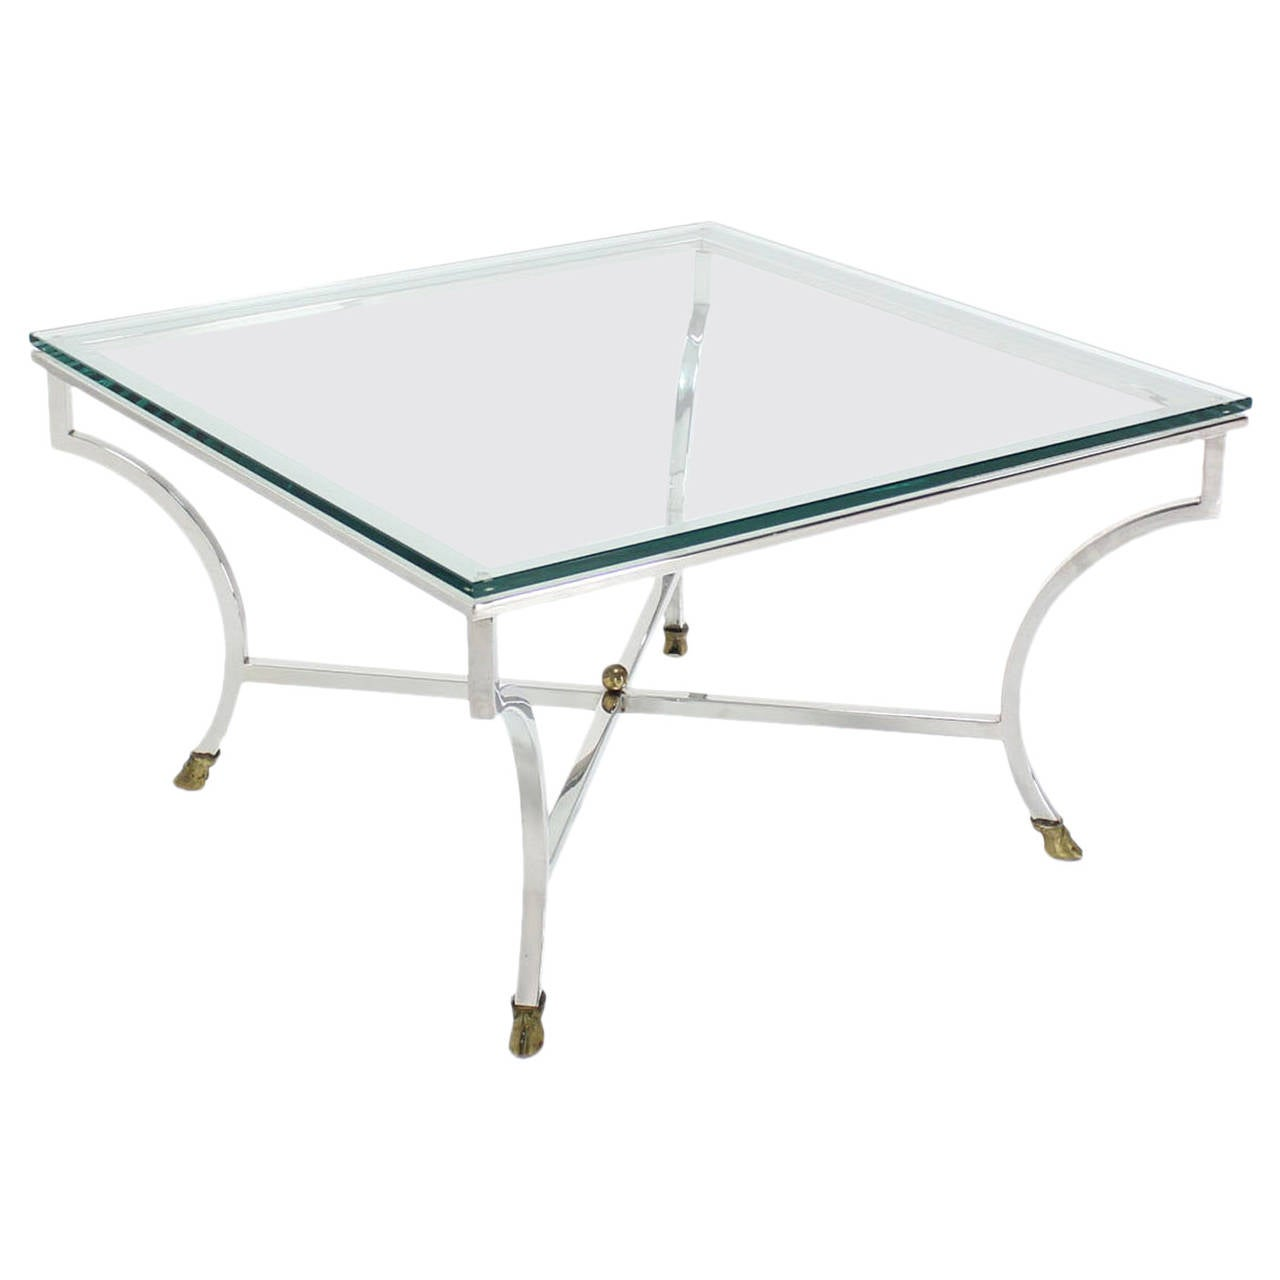 Square Crome Brass Hoof Feet X Base Glass Top Coffee Table For Sale At 1stdibs